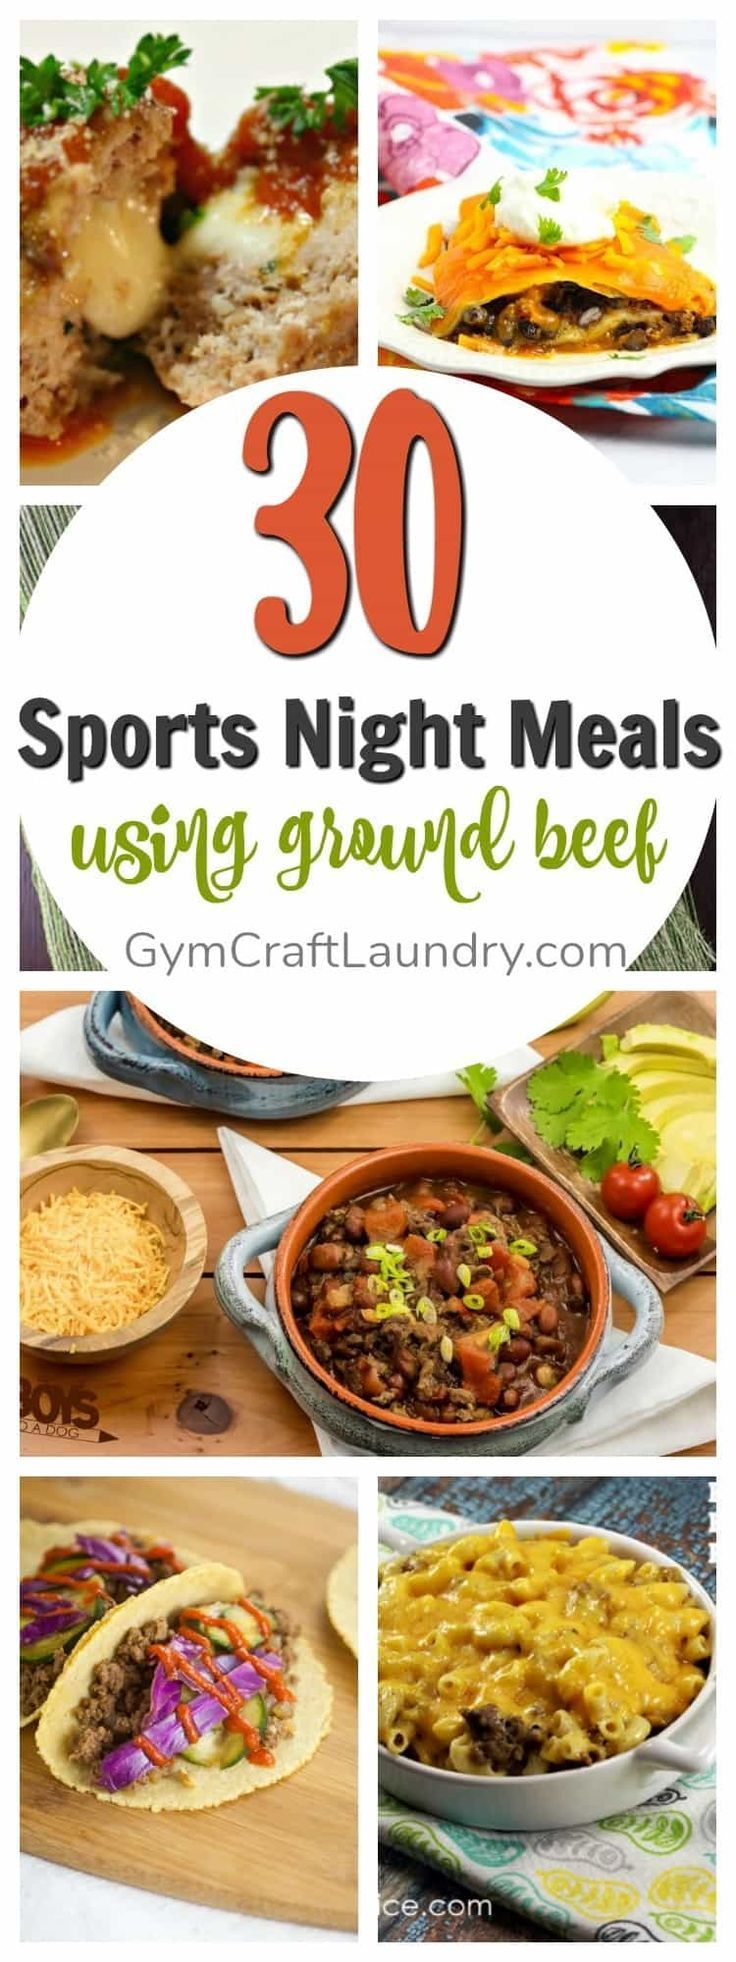 30 Sports Night Meals With Ground Beef images